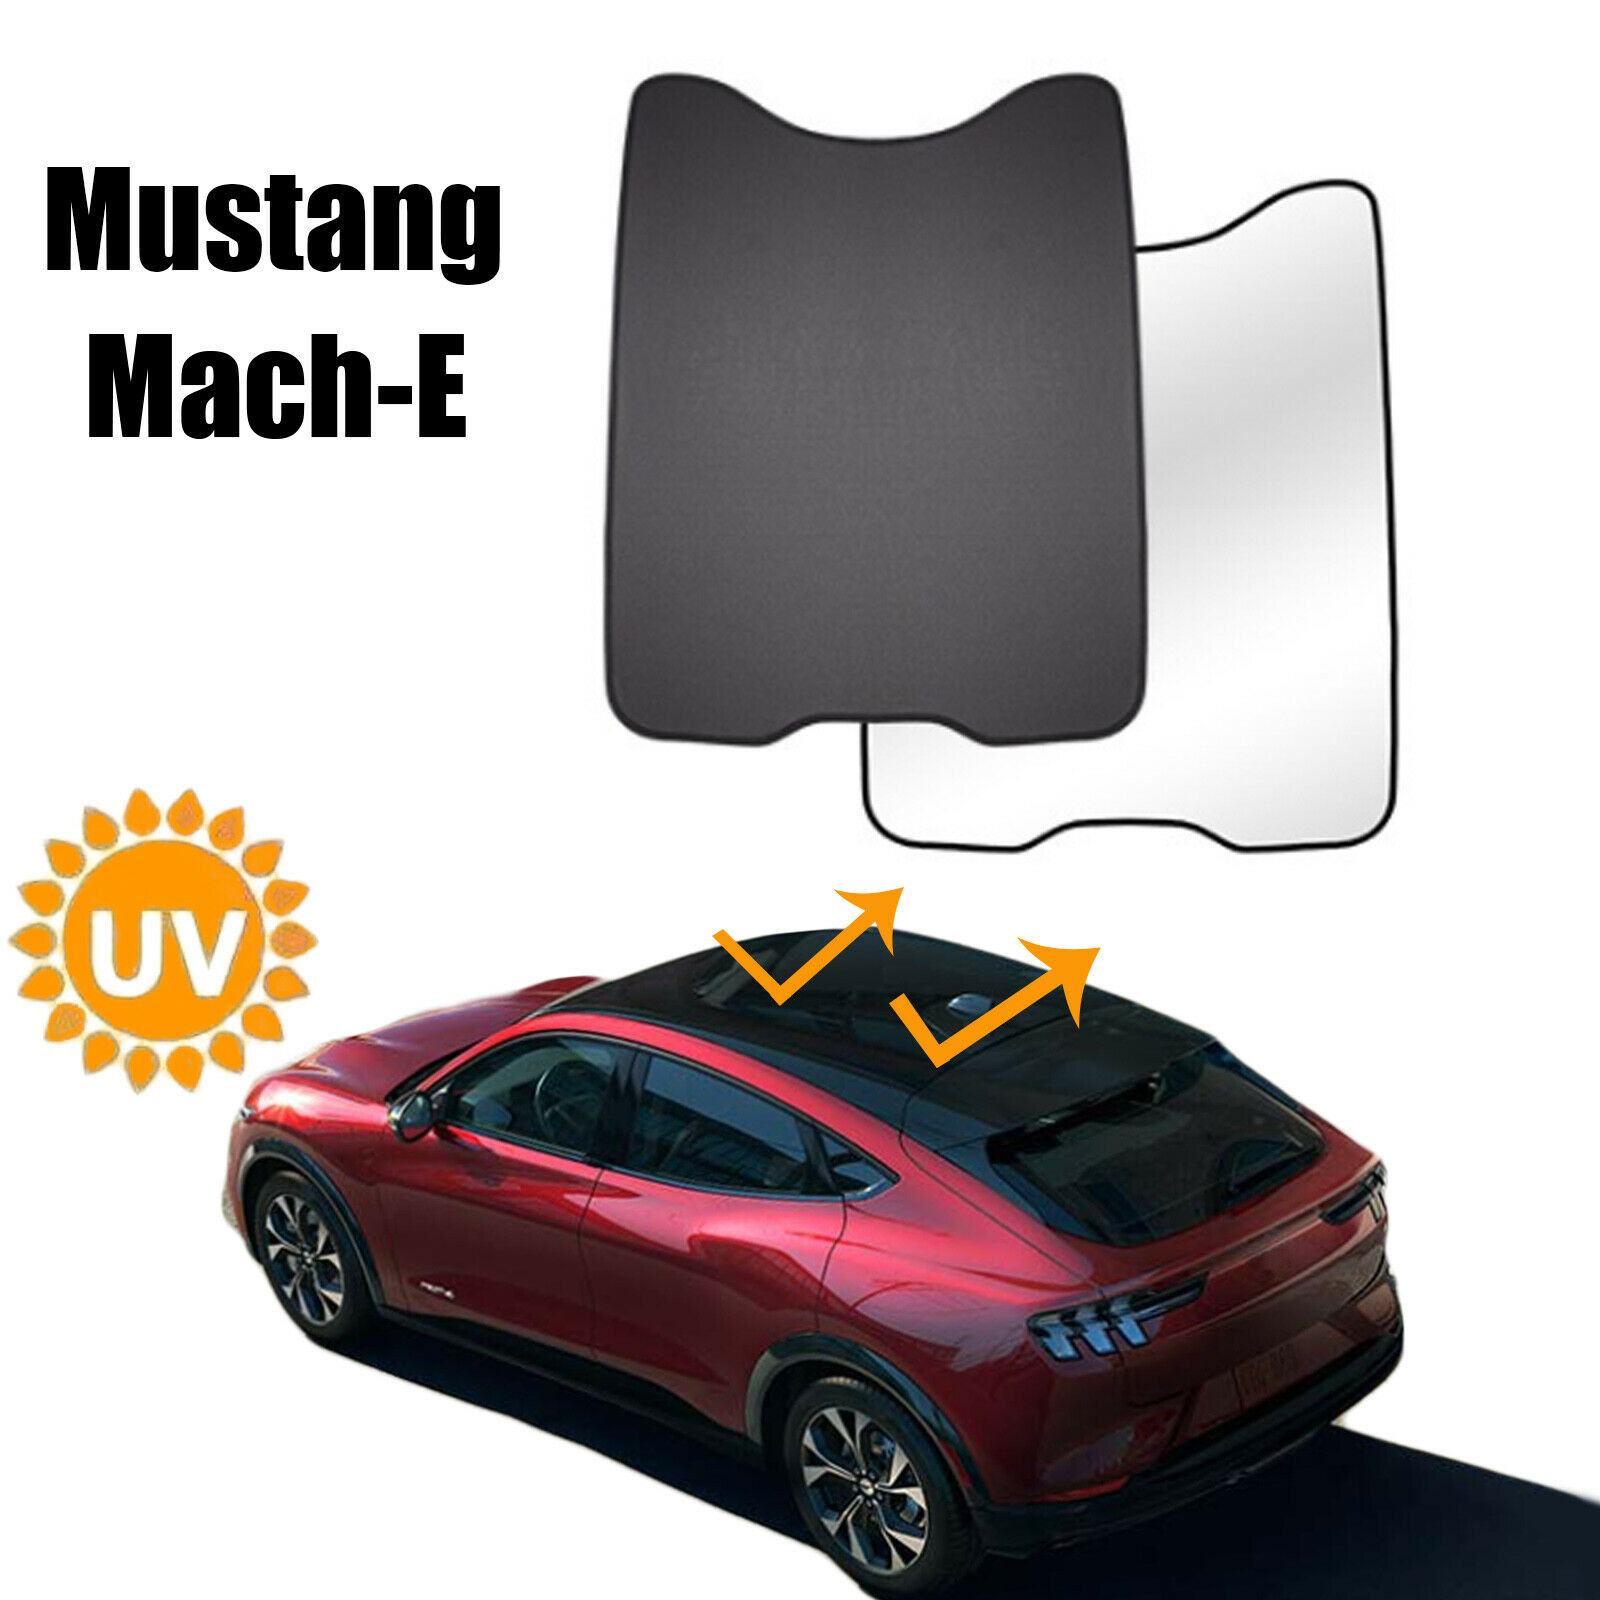 Sunroof Sunshade for Ford Mustang Mach-E Accessories 2021 2022 Window Sun Shade